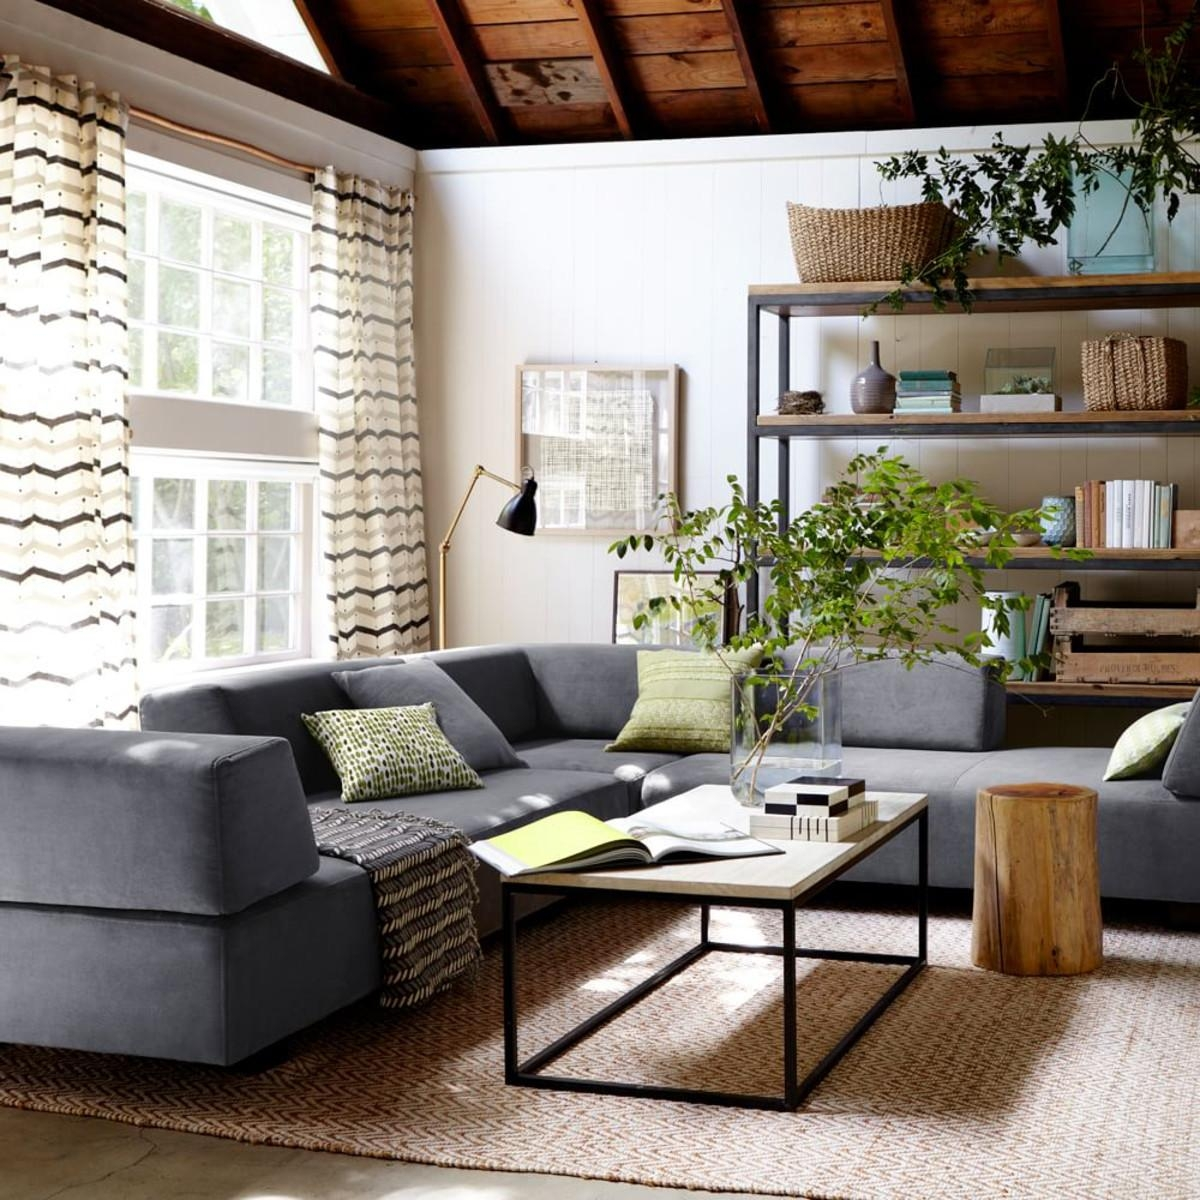 Furniture: Henry Sectional West Elm Reviews | West Elm Sofa Pertaining To West Elm Sectionals (Image 8 of 20)